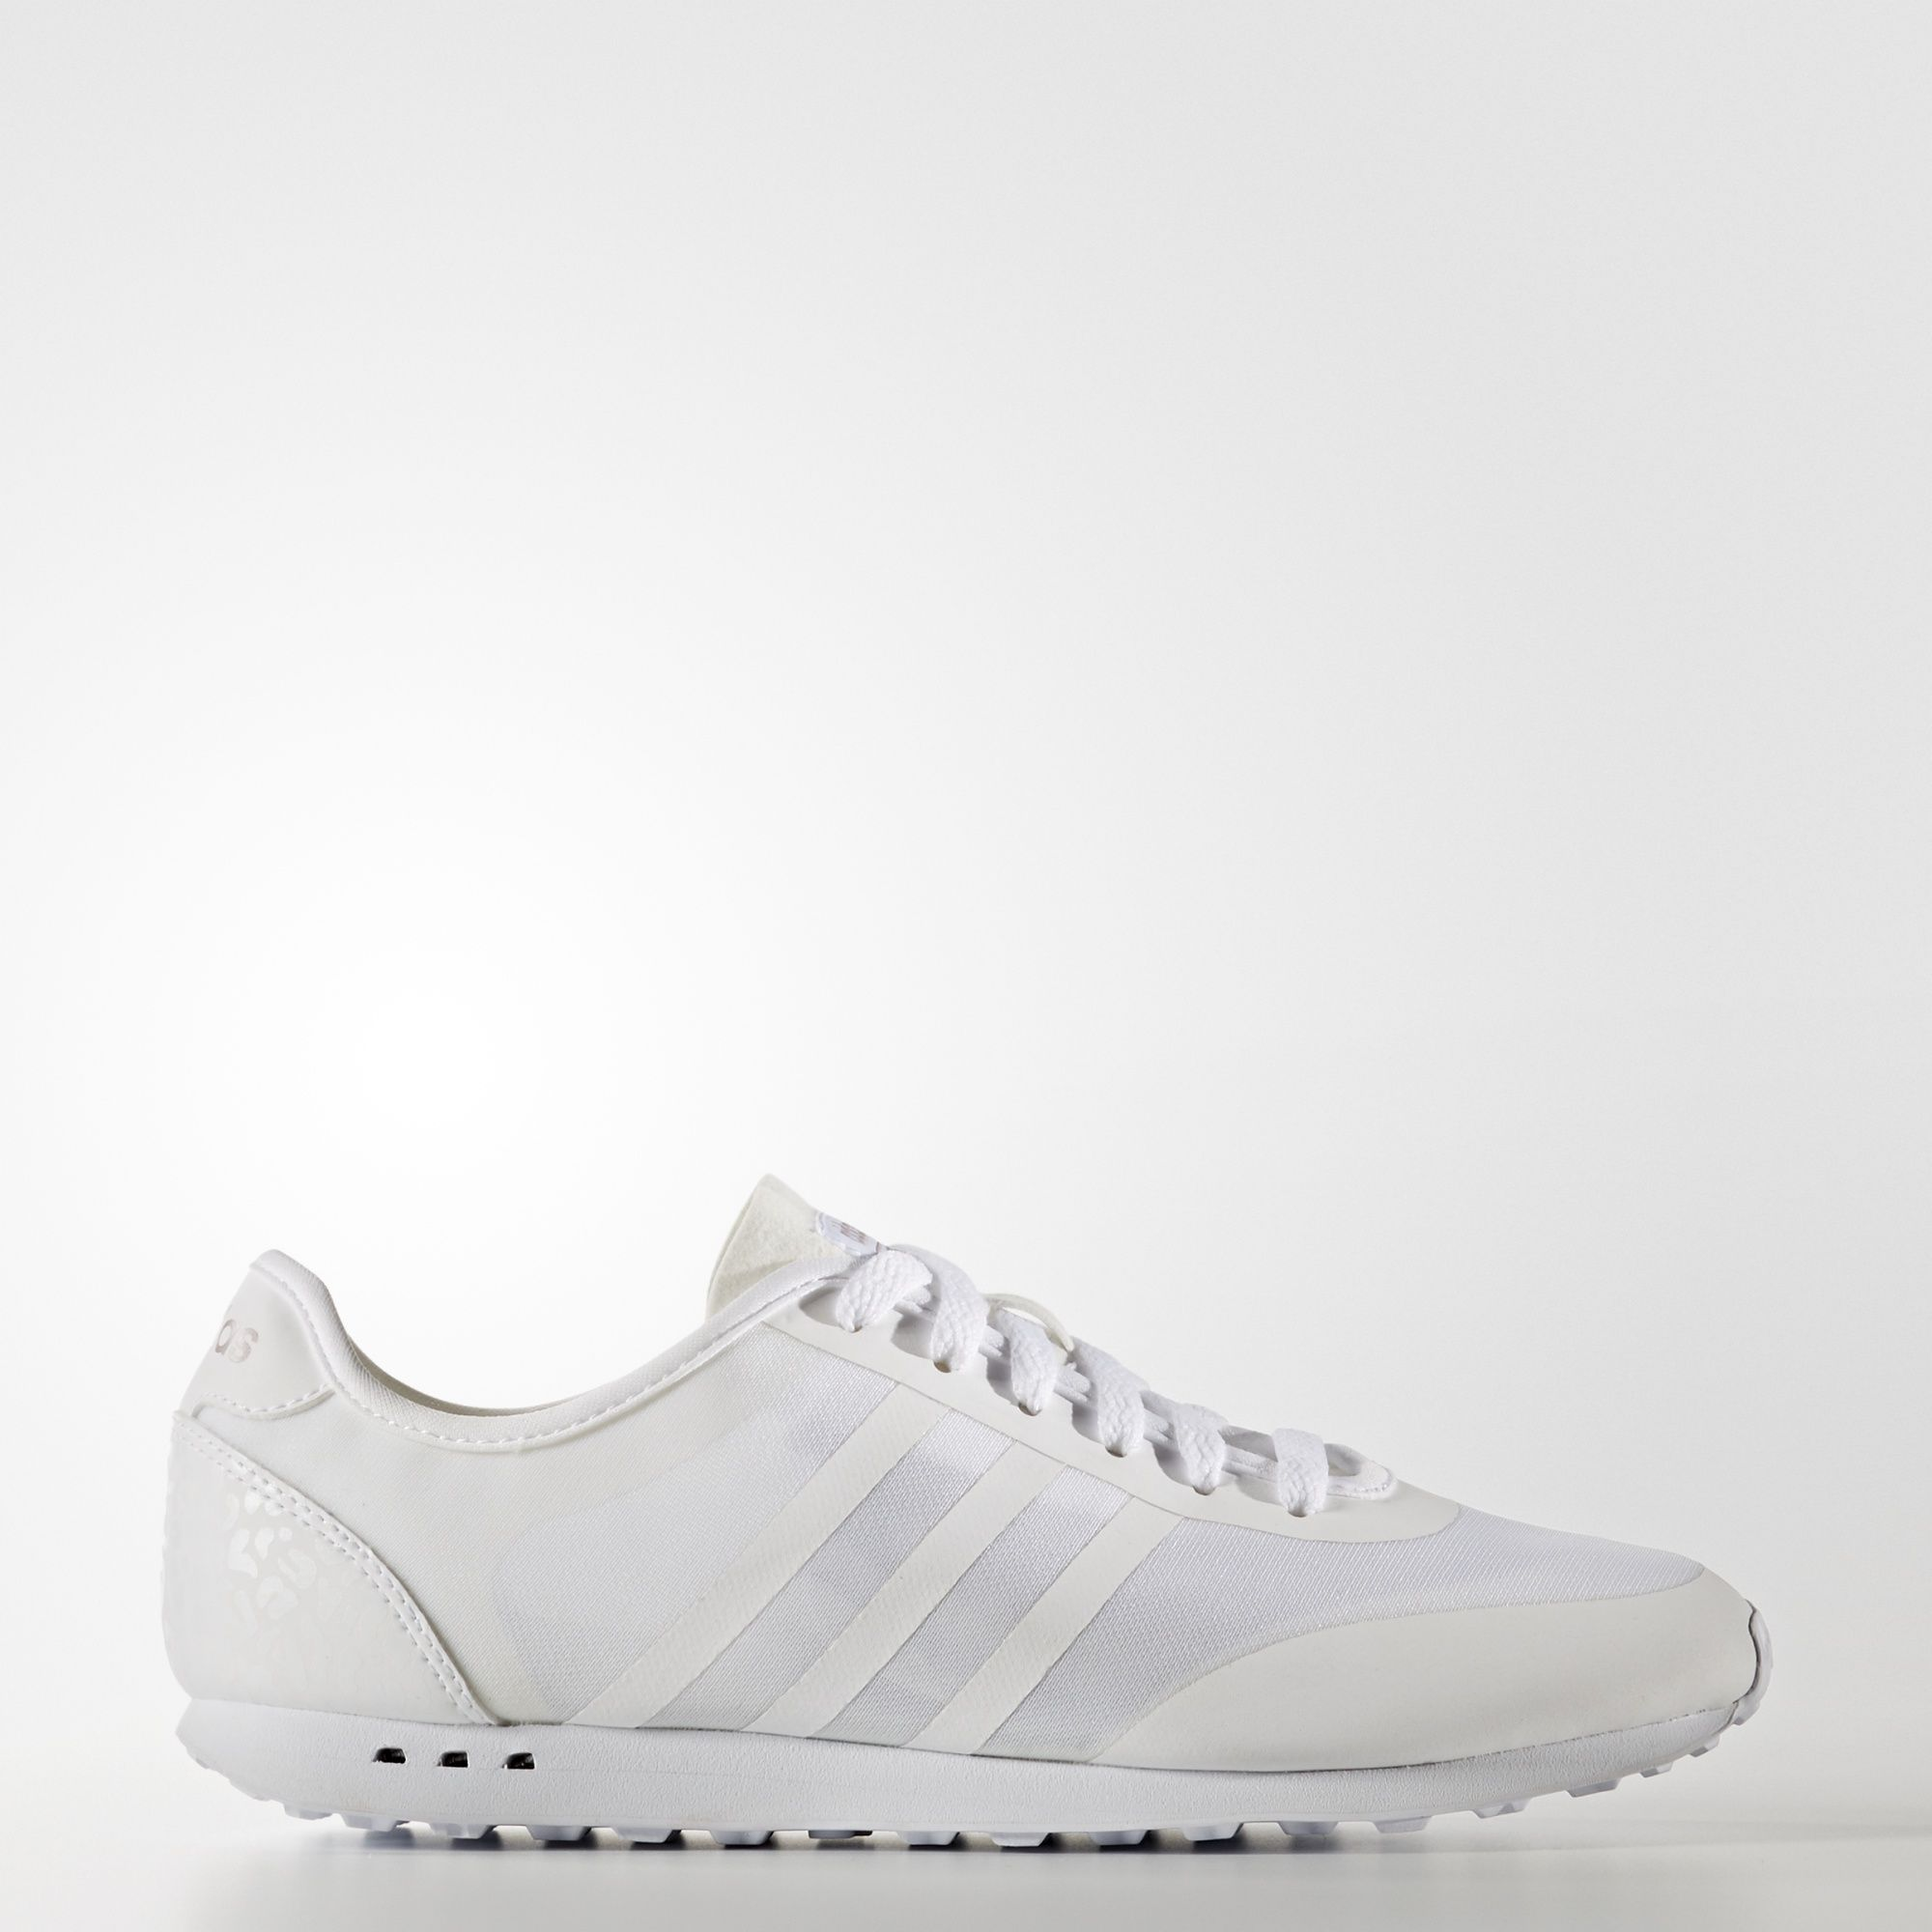 adidas neo cloudfoam groove men's athletic shoes